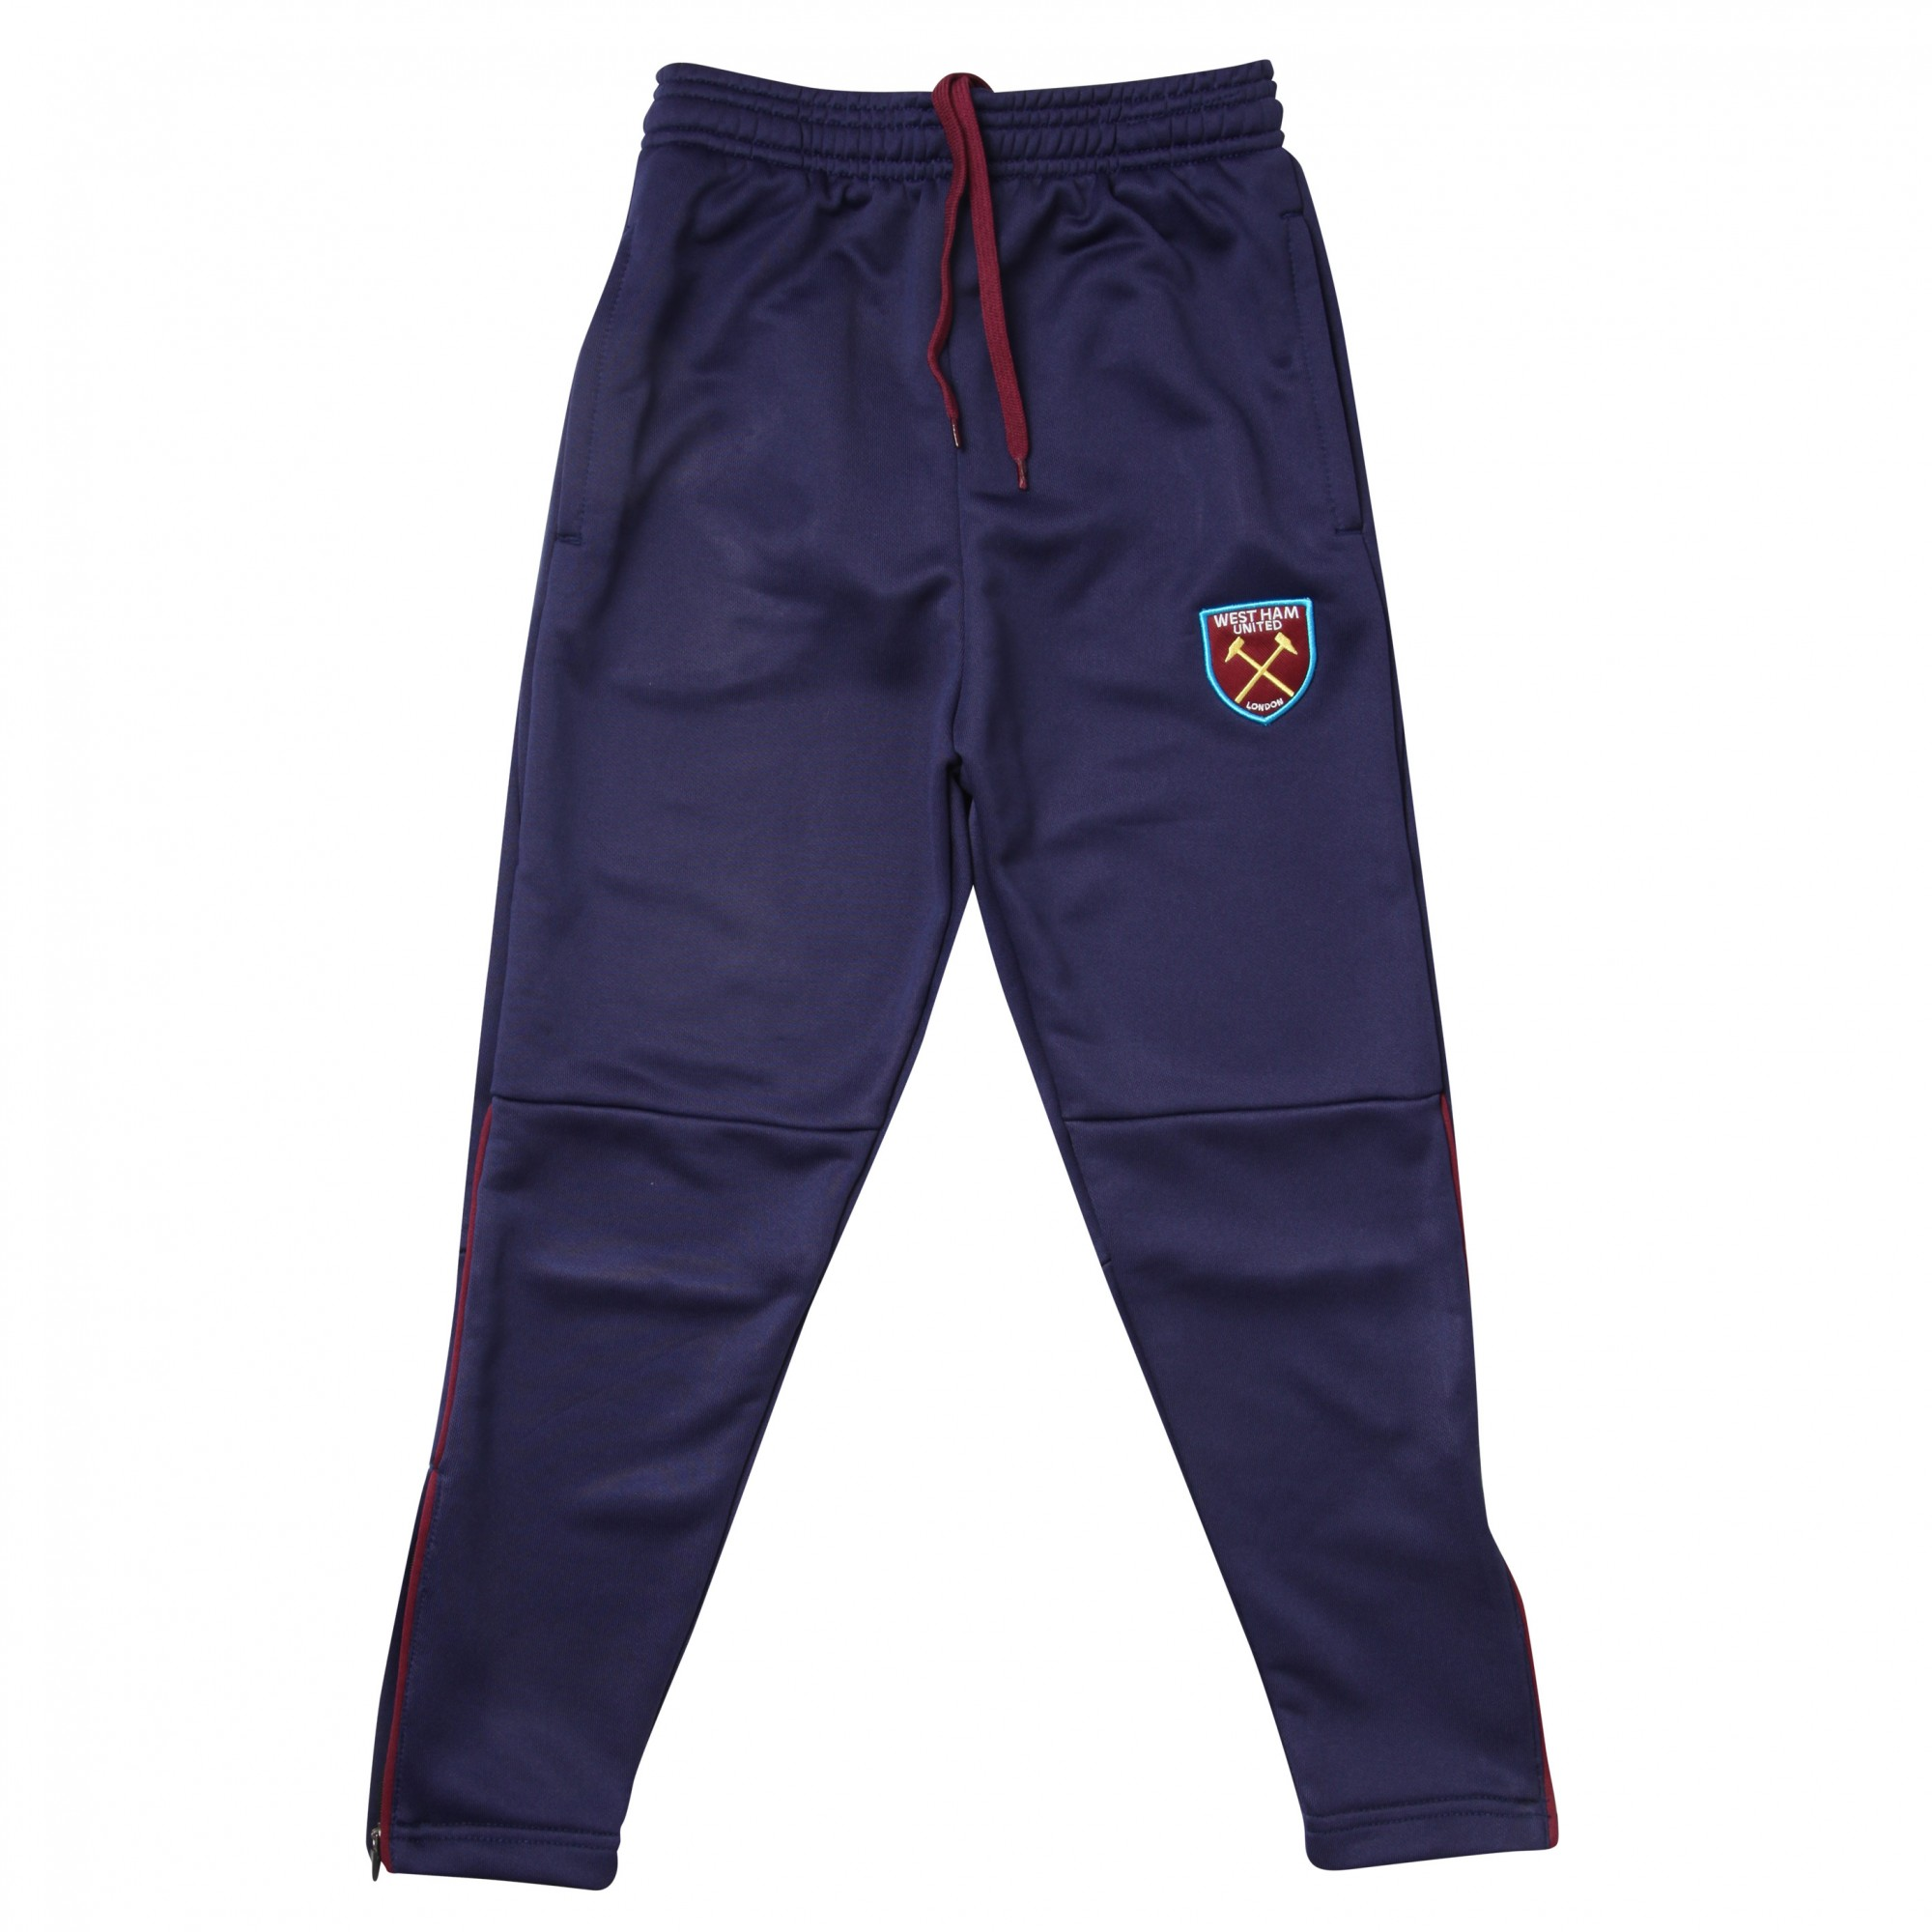 ESSENTIALS - JUNIOR NAVY POLY PANTS